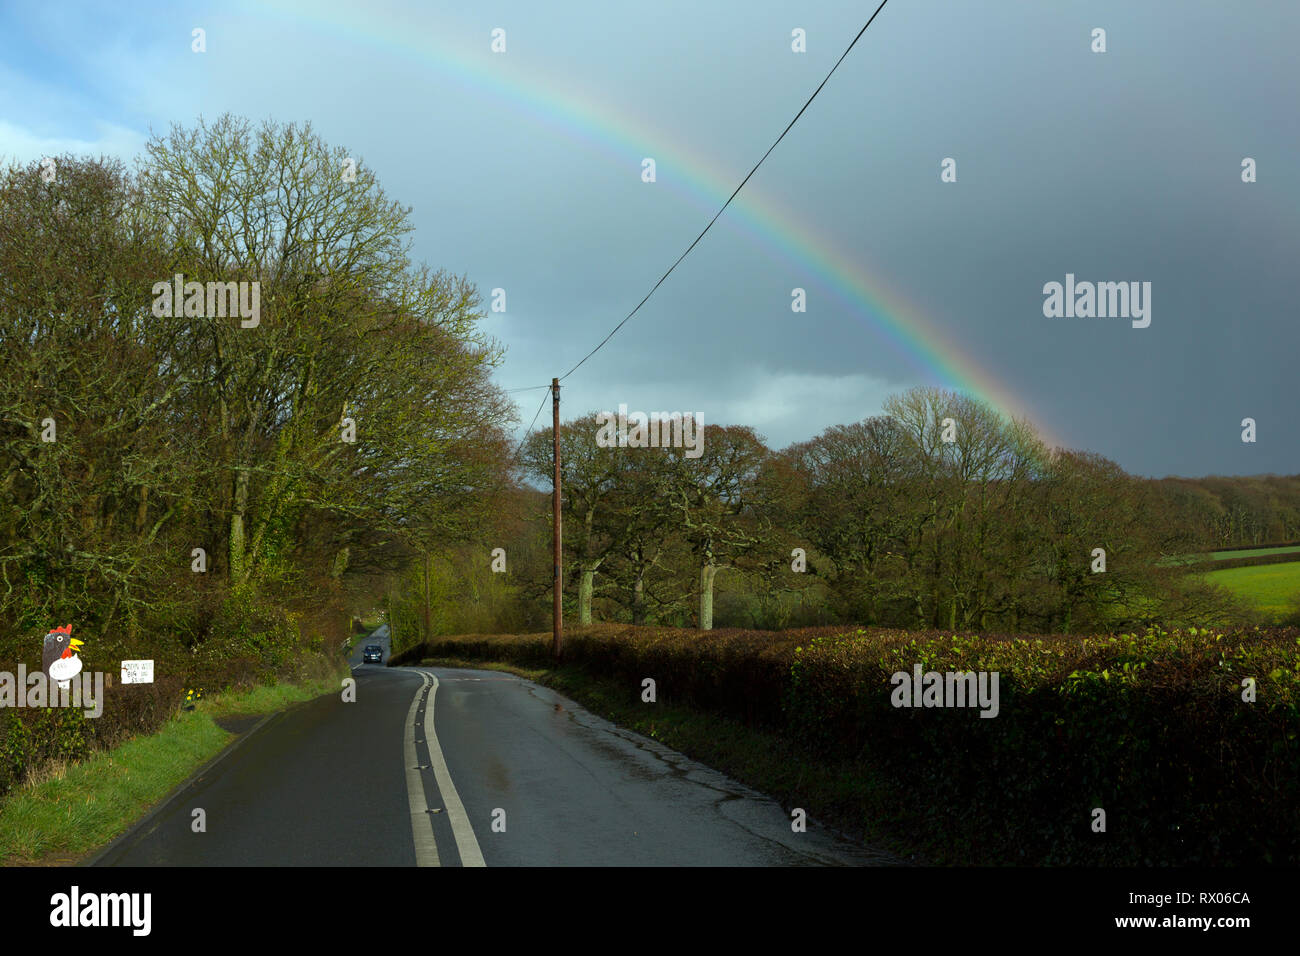 rainbow,rural,road,double,white,no,over,taking,lines,after,rain,storm,slippery,conditions,dangerous,country,village,speed,slippery,slide,crash,acciden - Stock Image